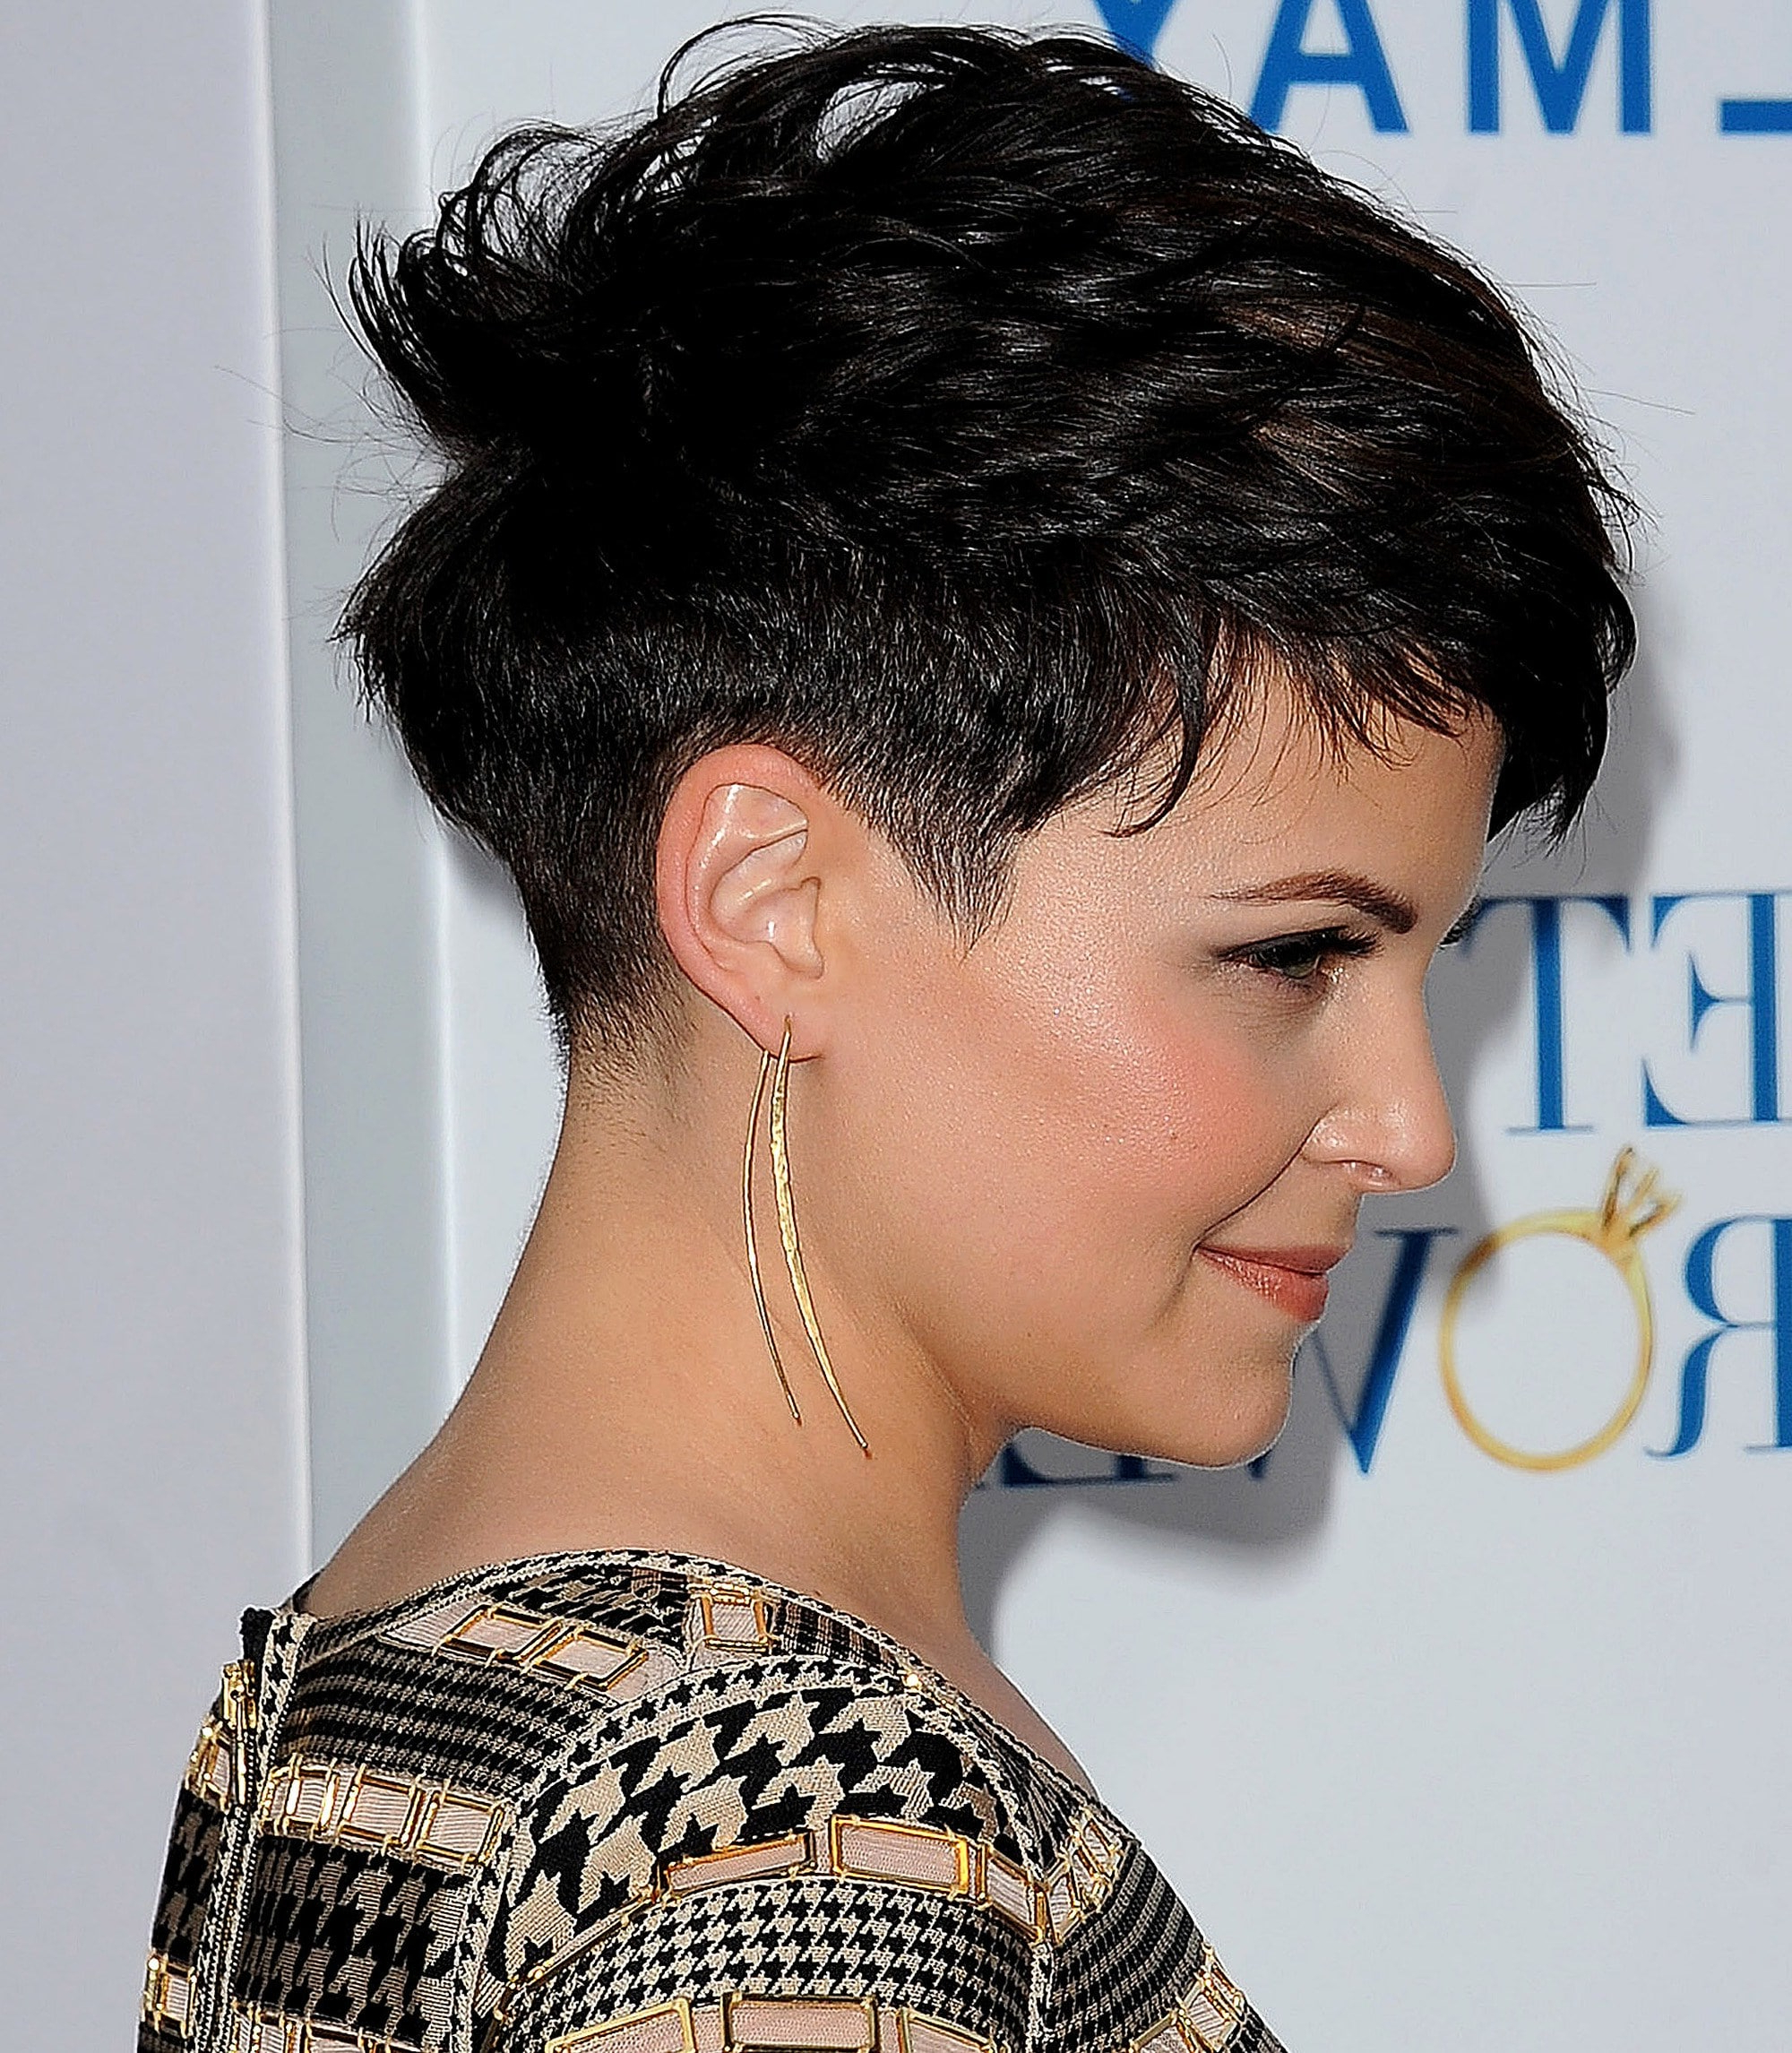 How To Grow Out Your Undercut With No Awkward Stages | All Things With Choppy Pixie Hairstyles With Tapered Nape (View 18 of 20)